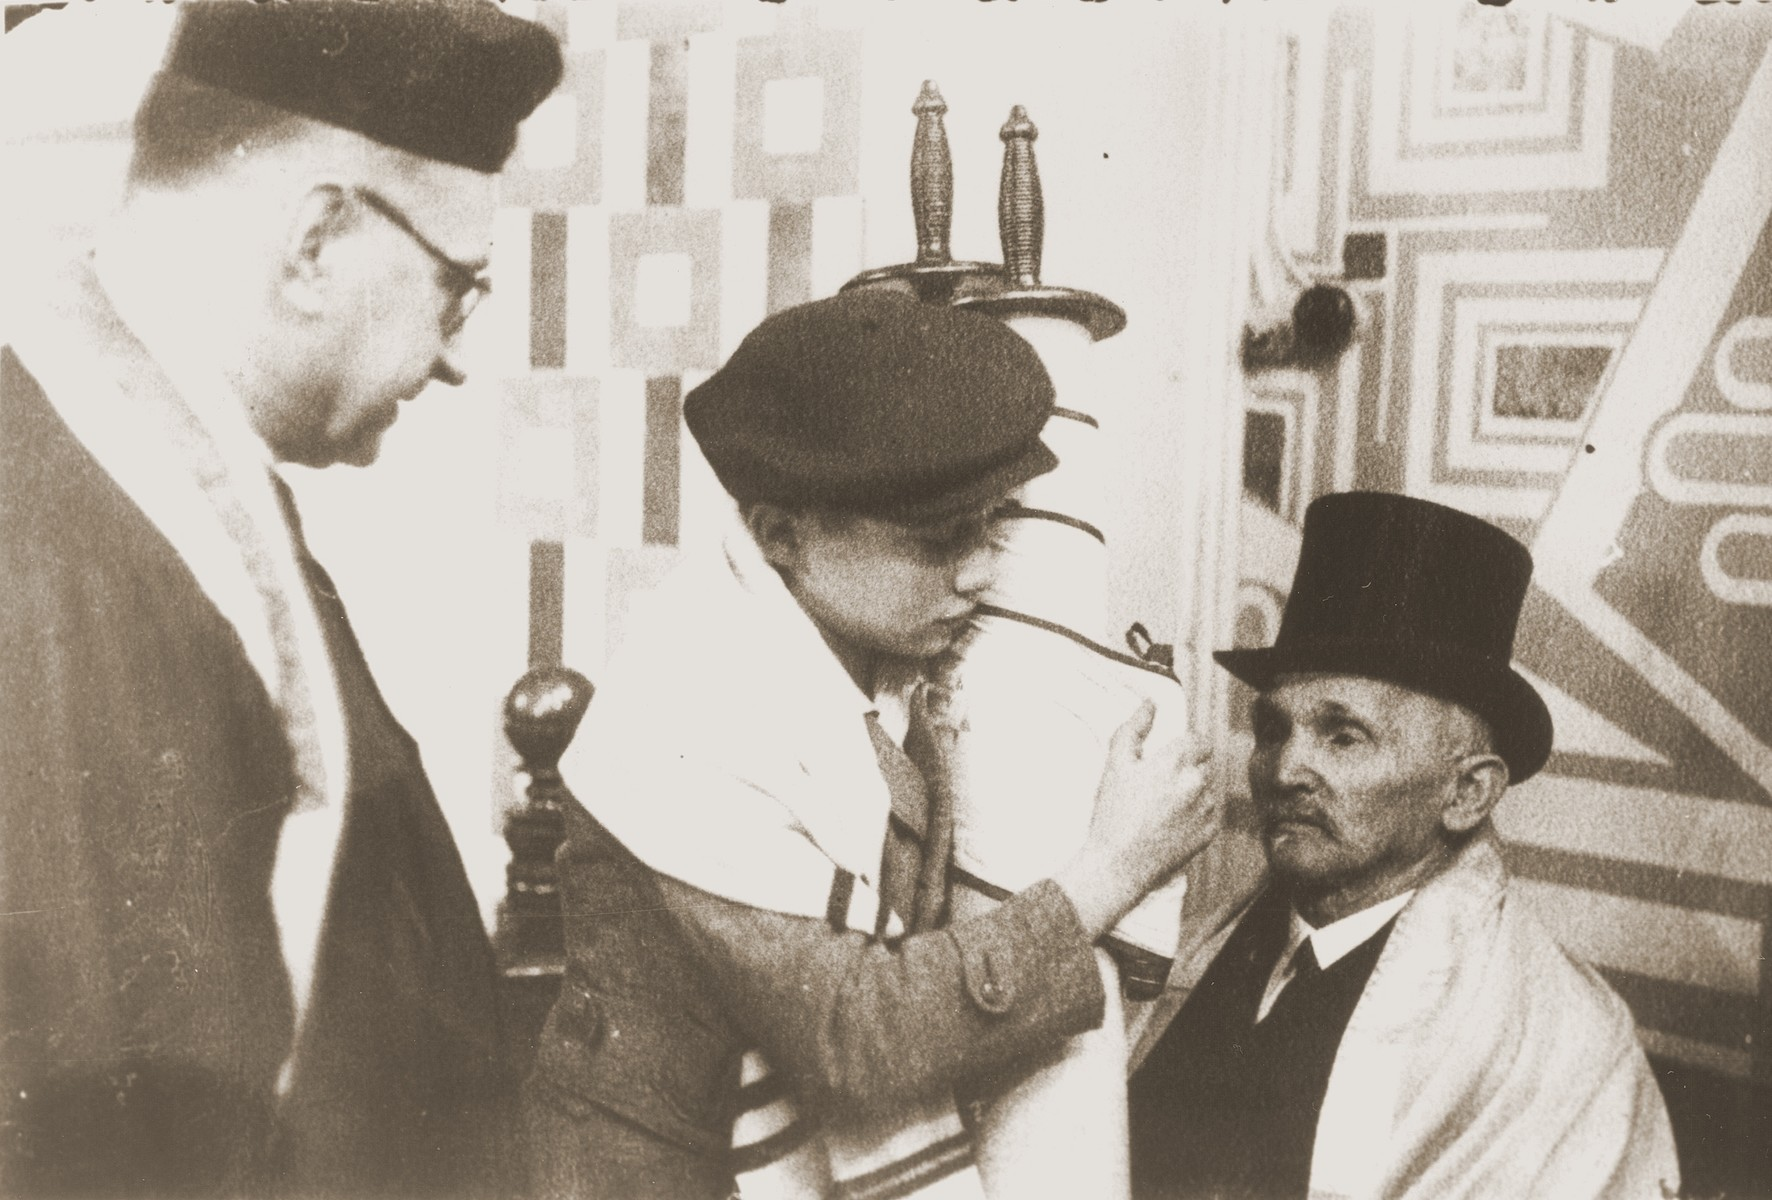 Siegbert Levy hands the Torah scroll to his great uncle (right) during his bar mitzvah at the liberal Zerrennerstrasse synagogue in Pforzheim.